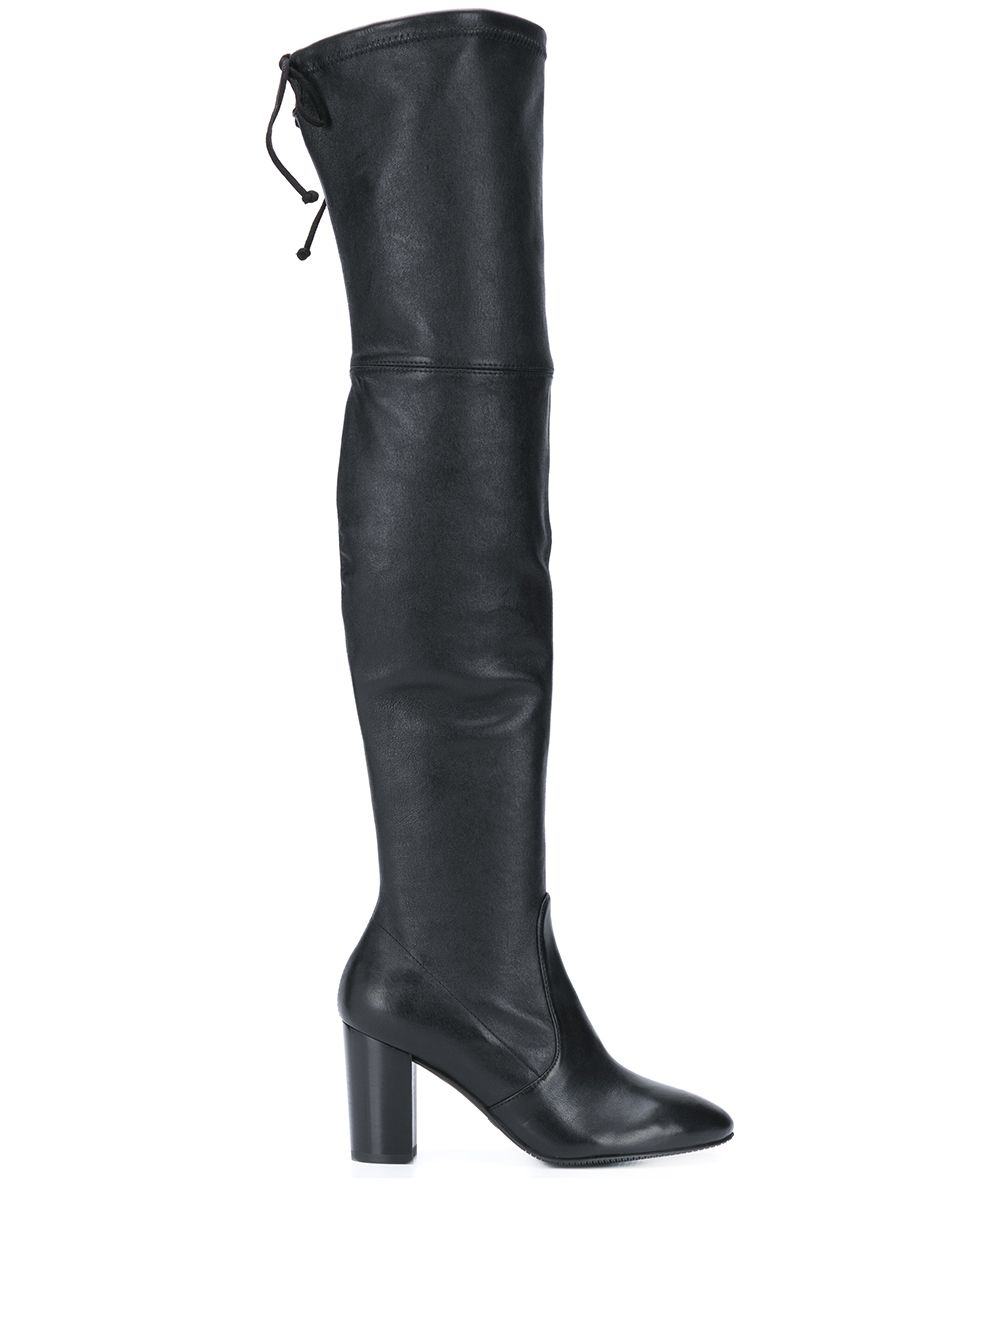 Zuzanna Leather Boots